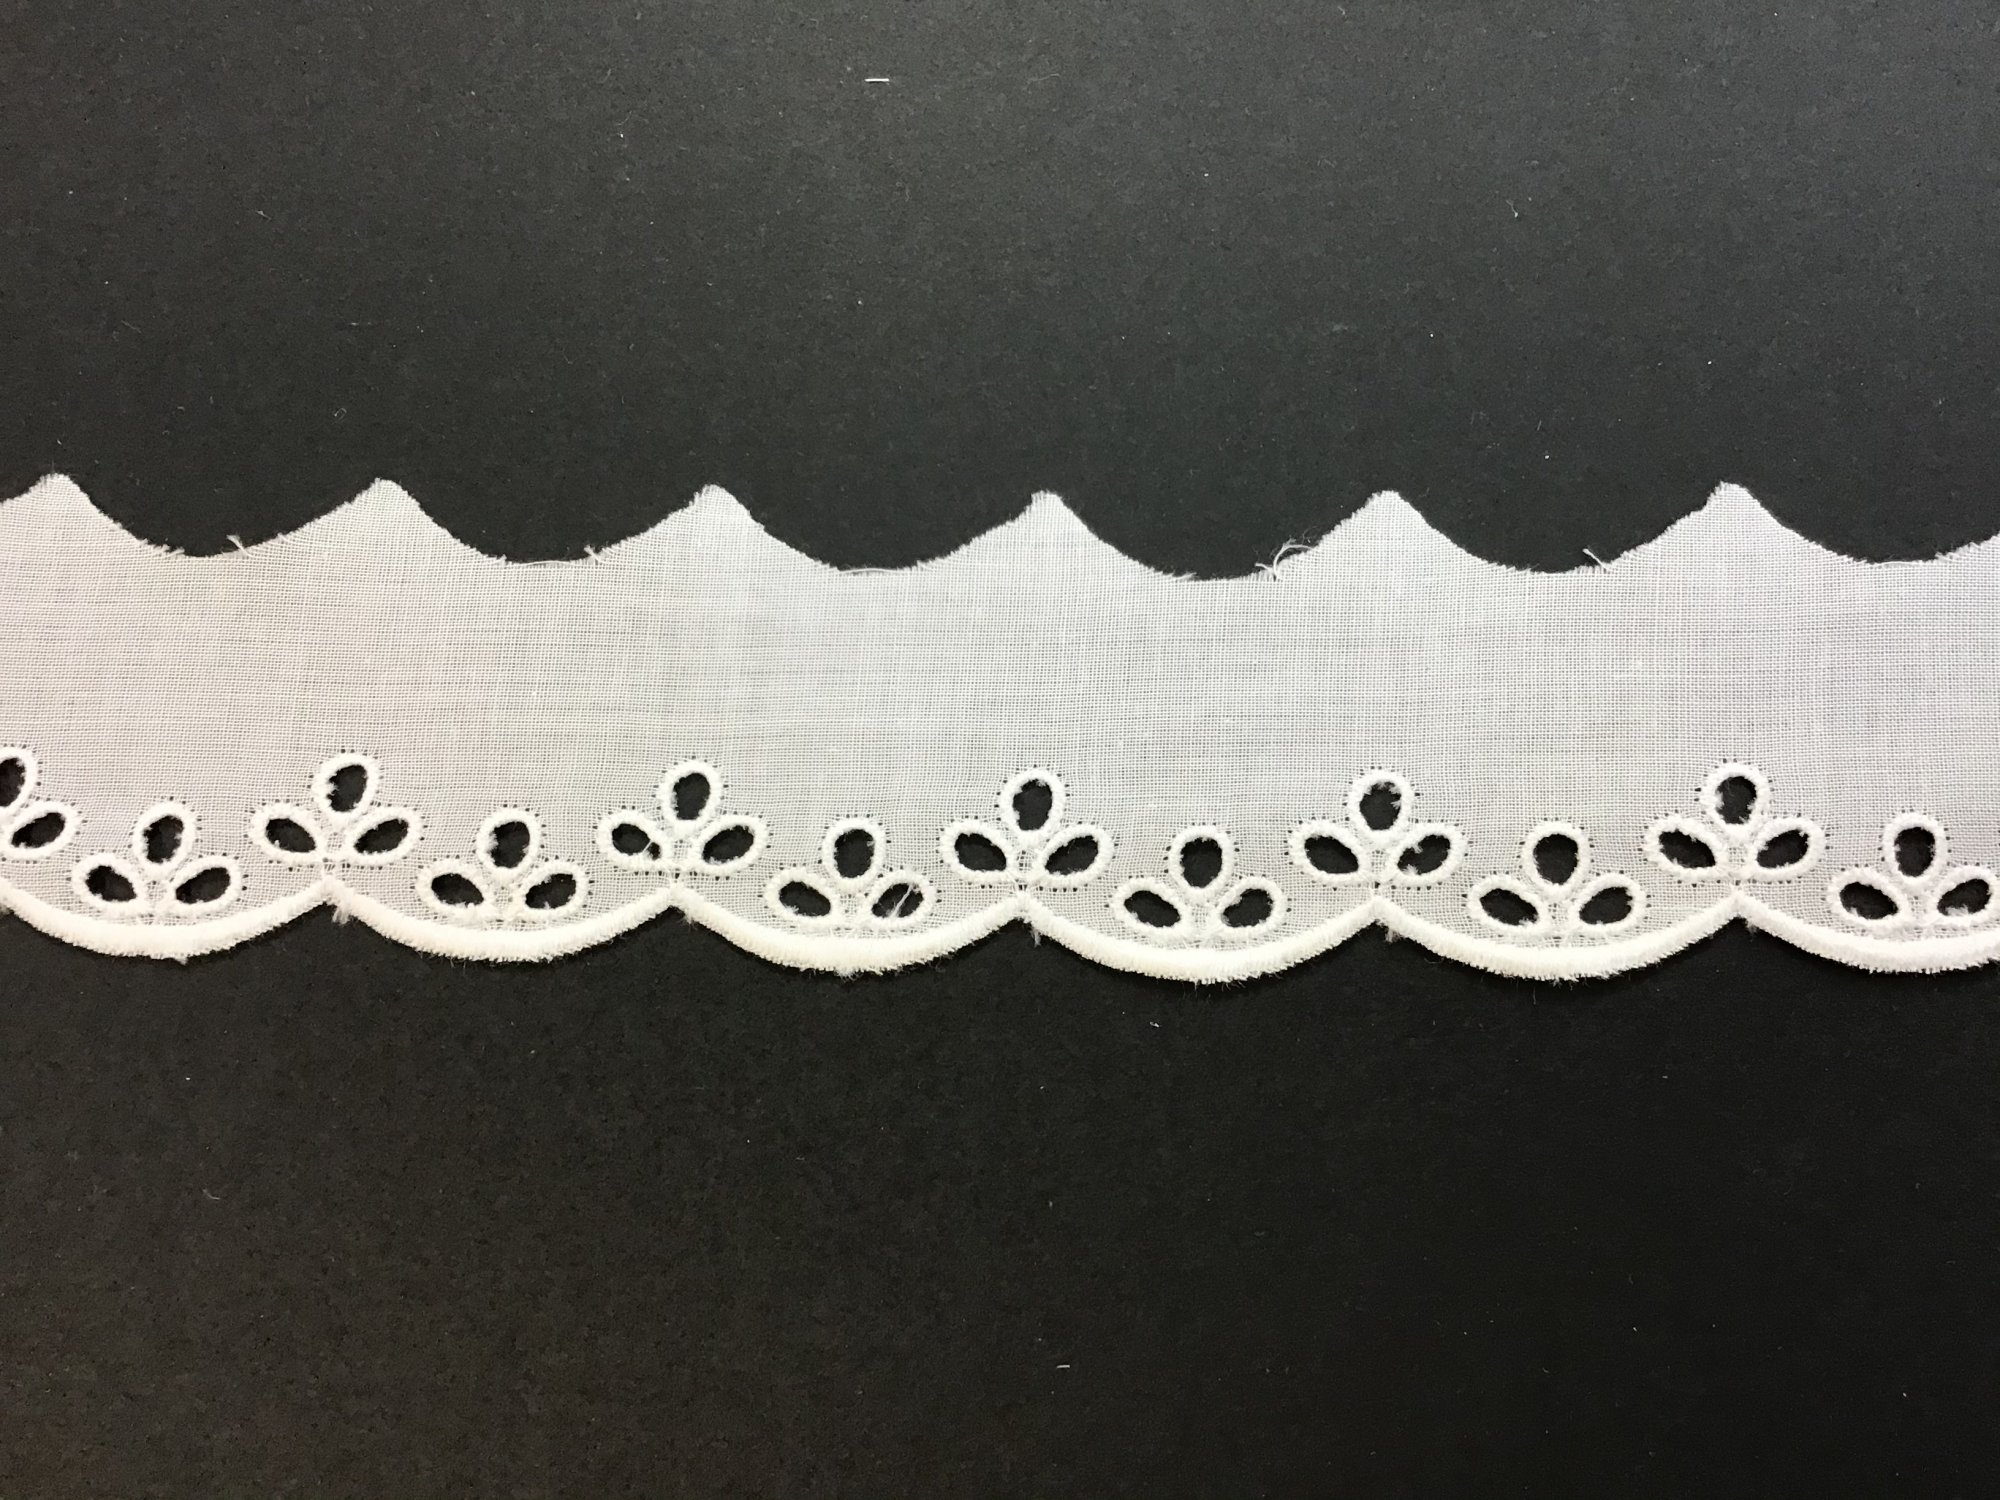 Swiss Embroidered Eyelet Edging 1.25 Inches White 70243-02